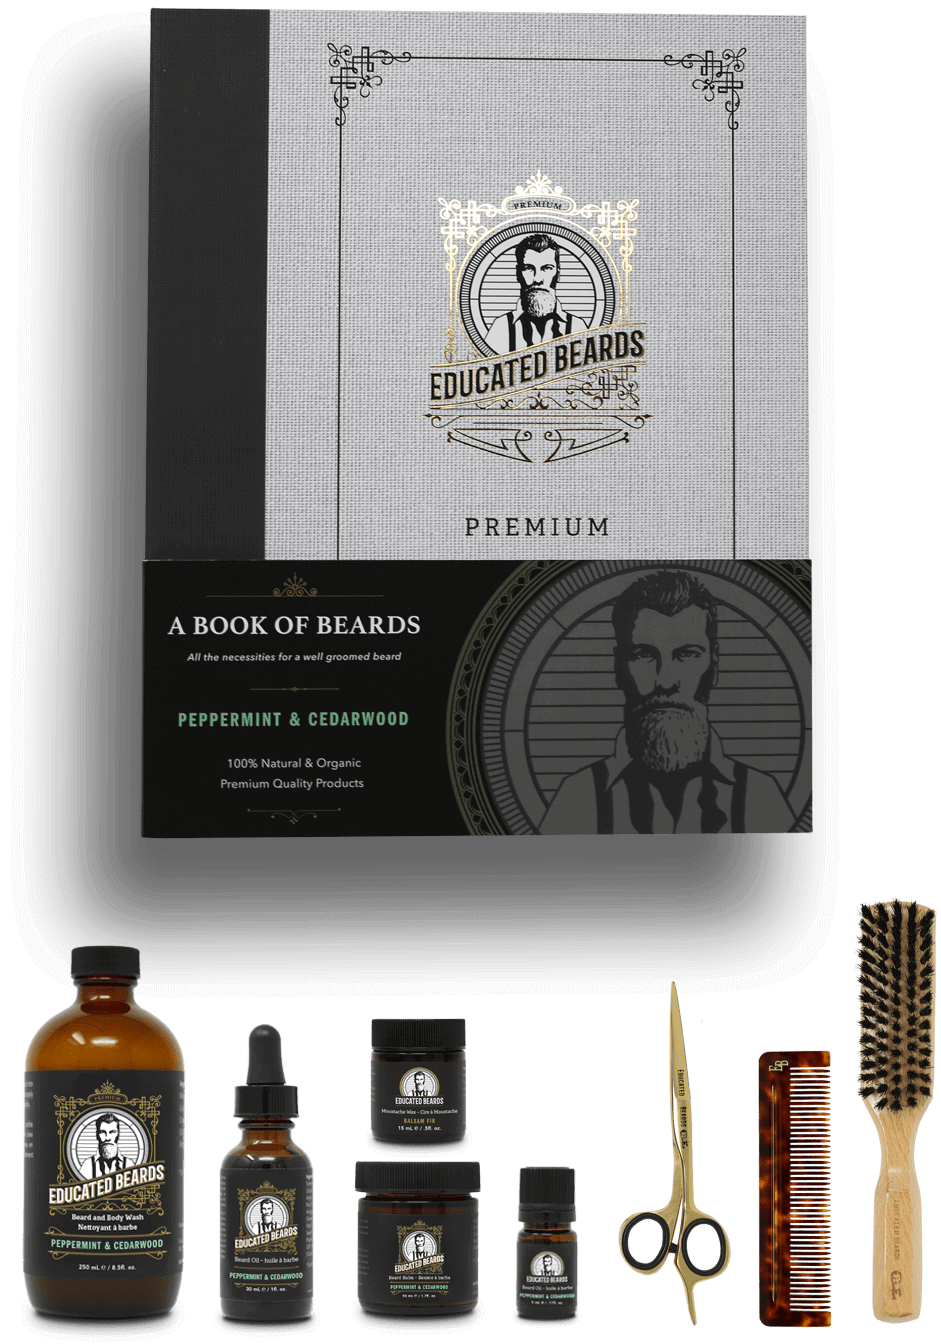 Peppermint & Cedarwood premium beard grooming kit